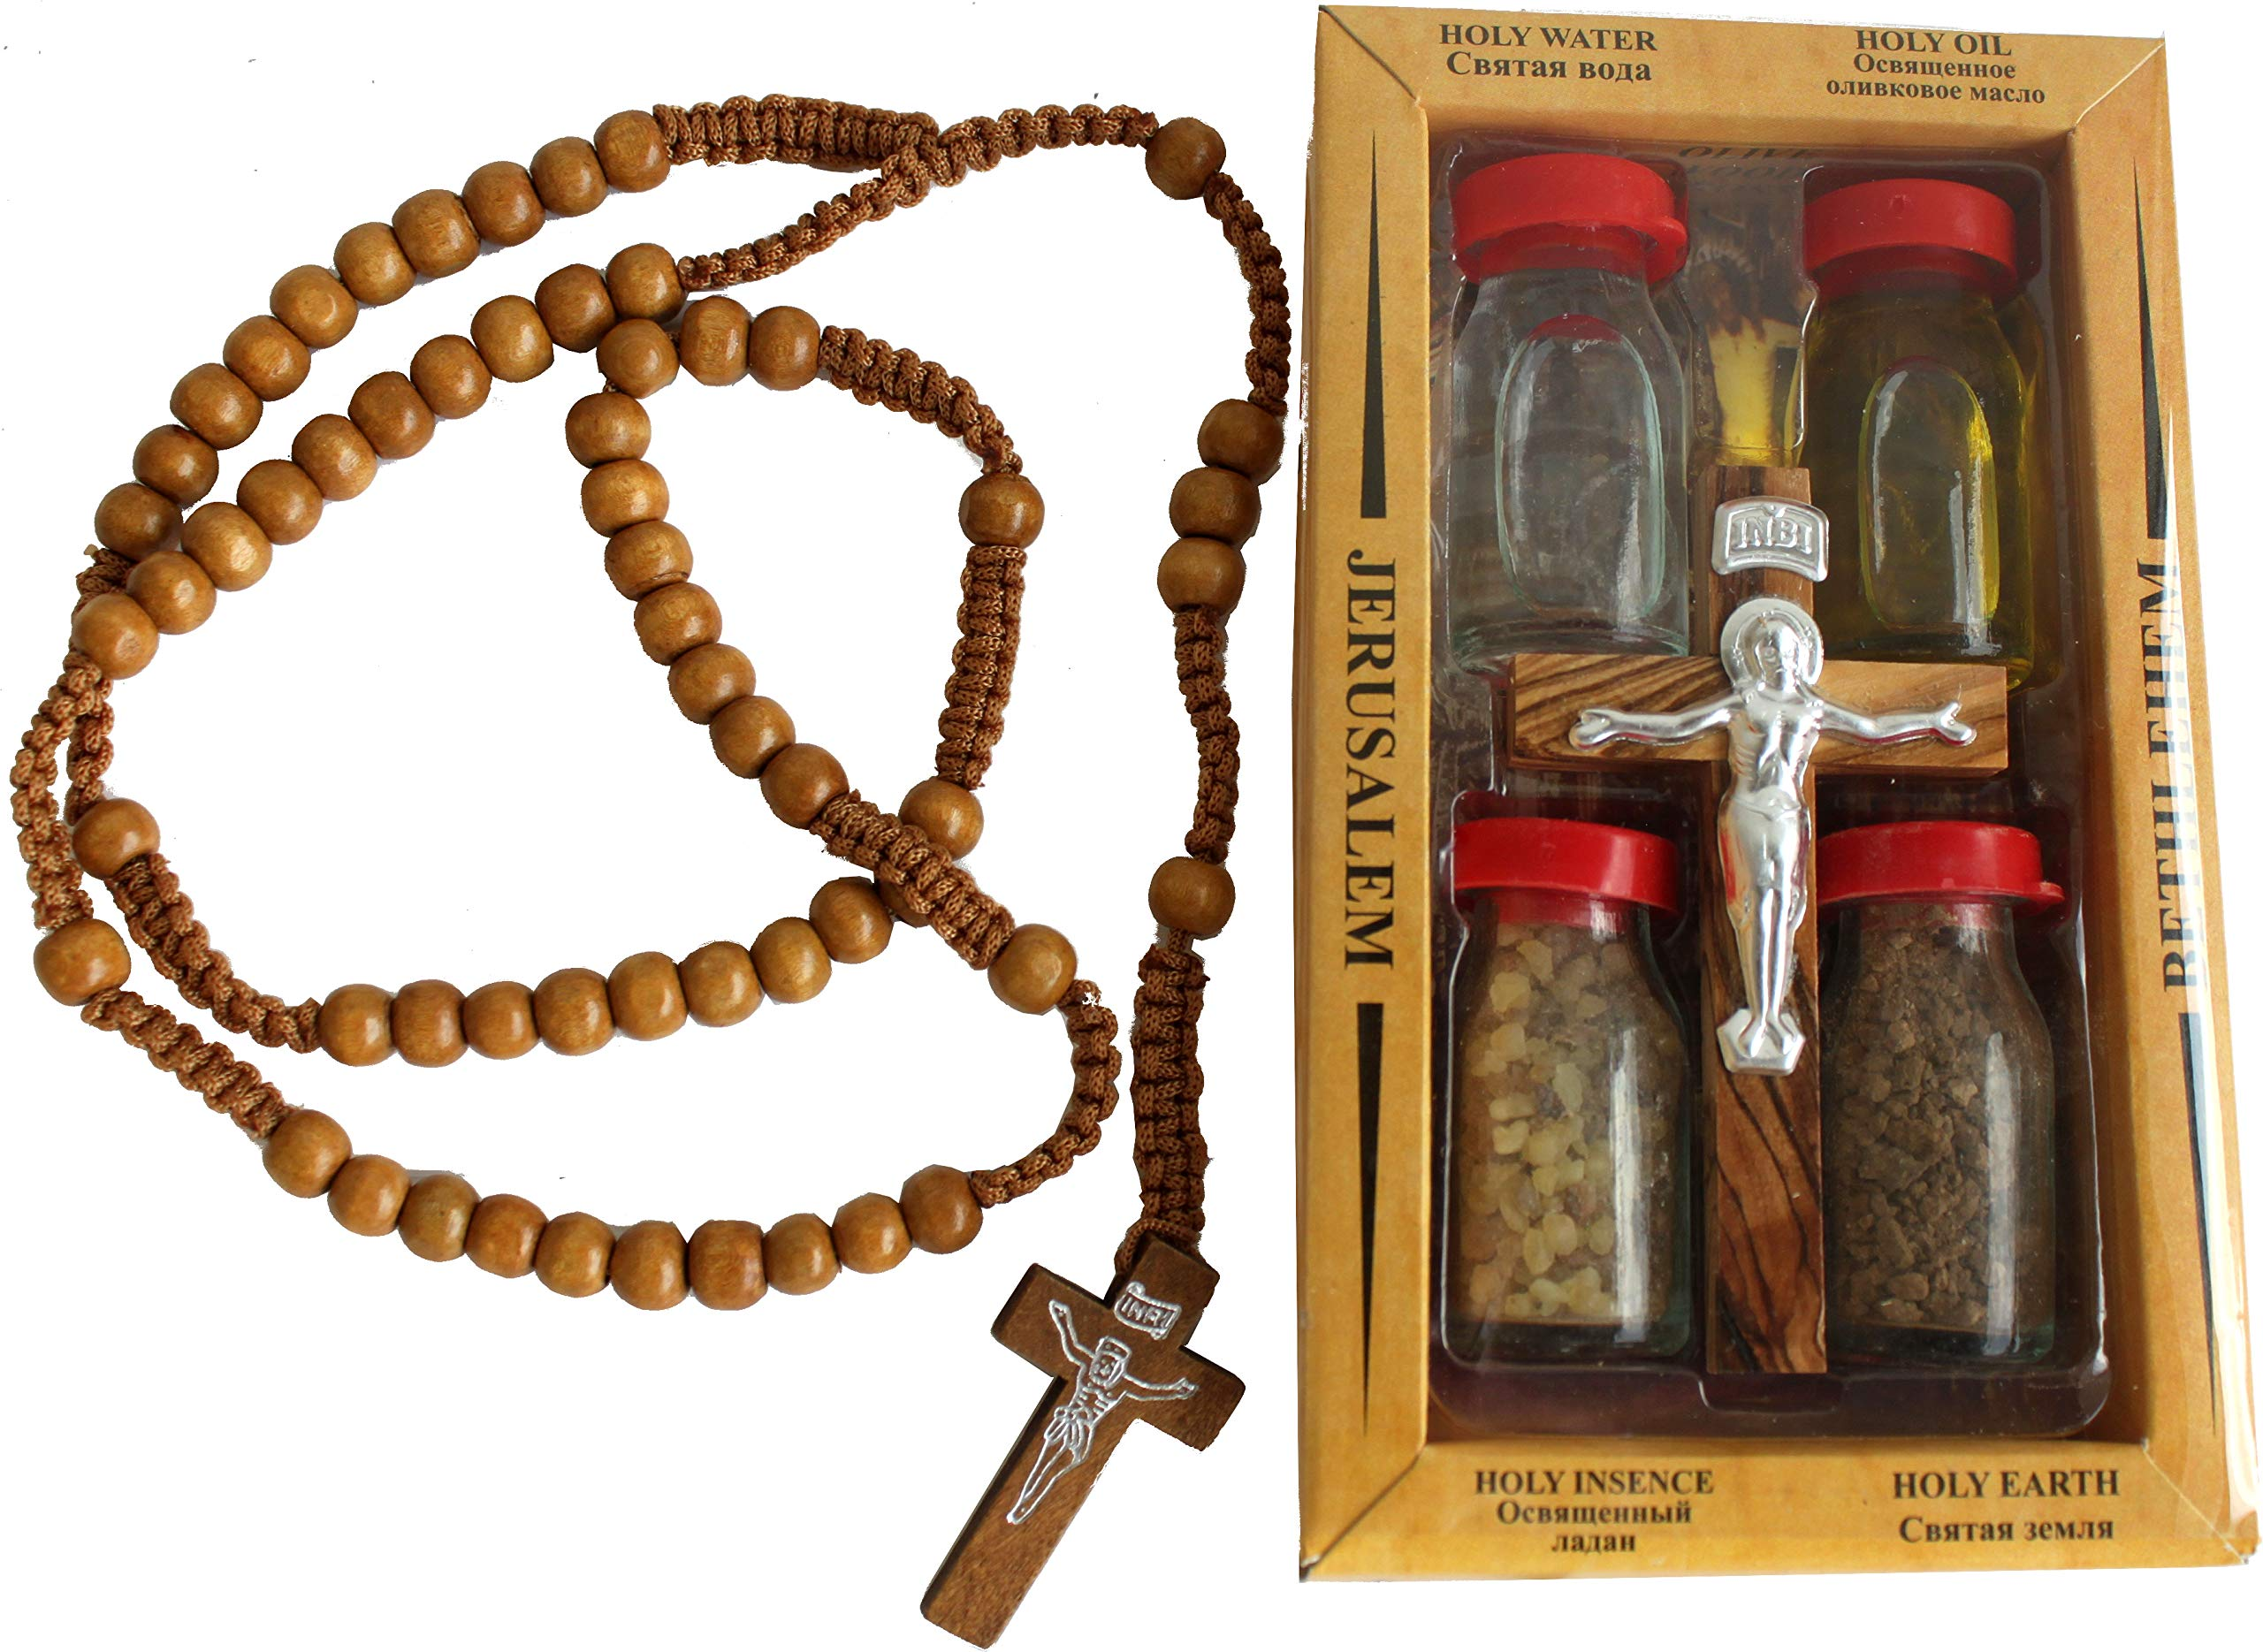 Holy Land Set 5in1 Olive Wood Cross Set with 3 Bottles - Oil, Jordan Water & Holy Earth